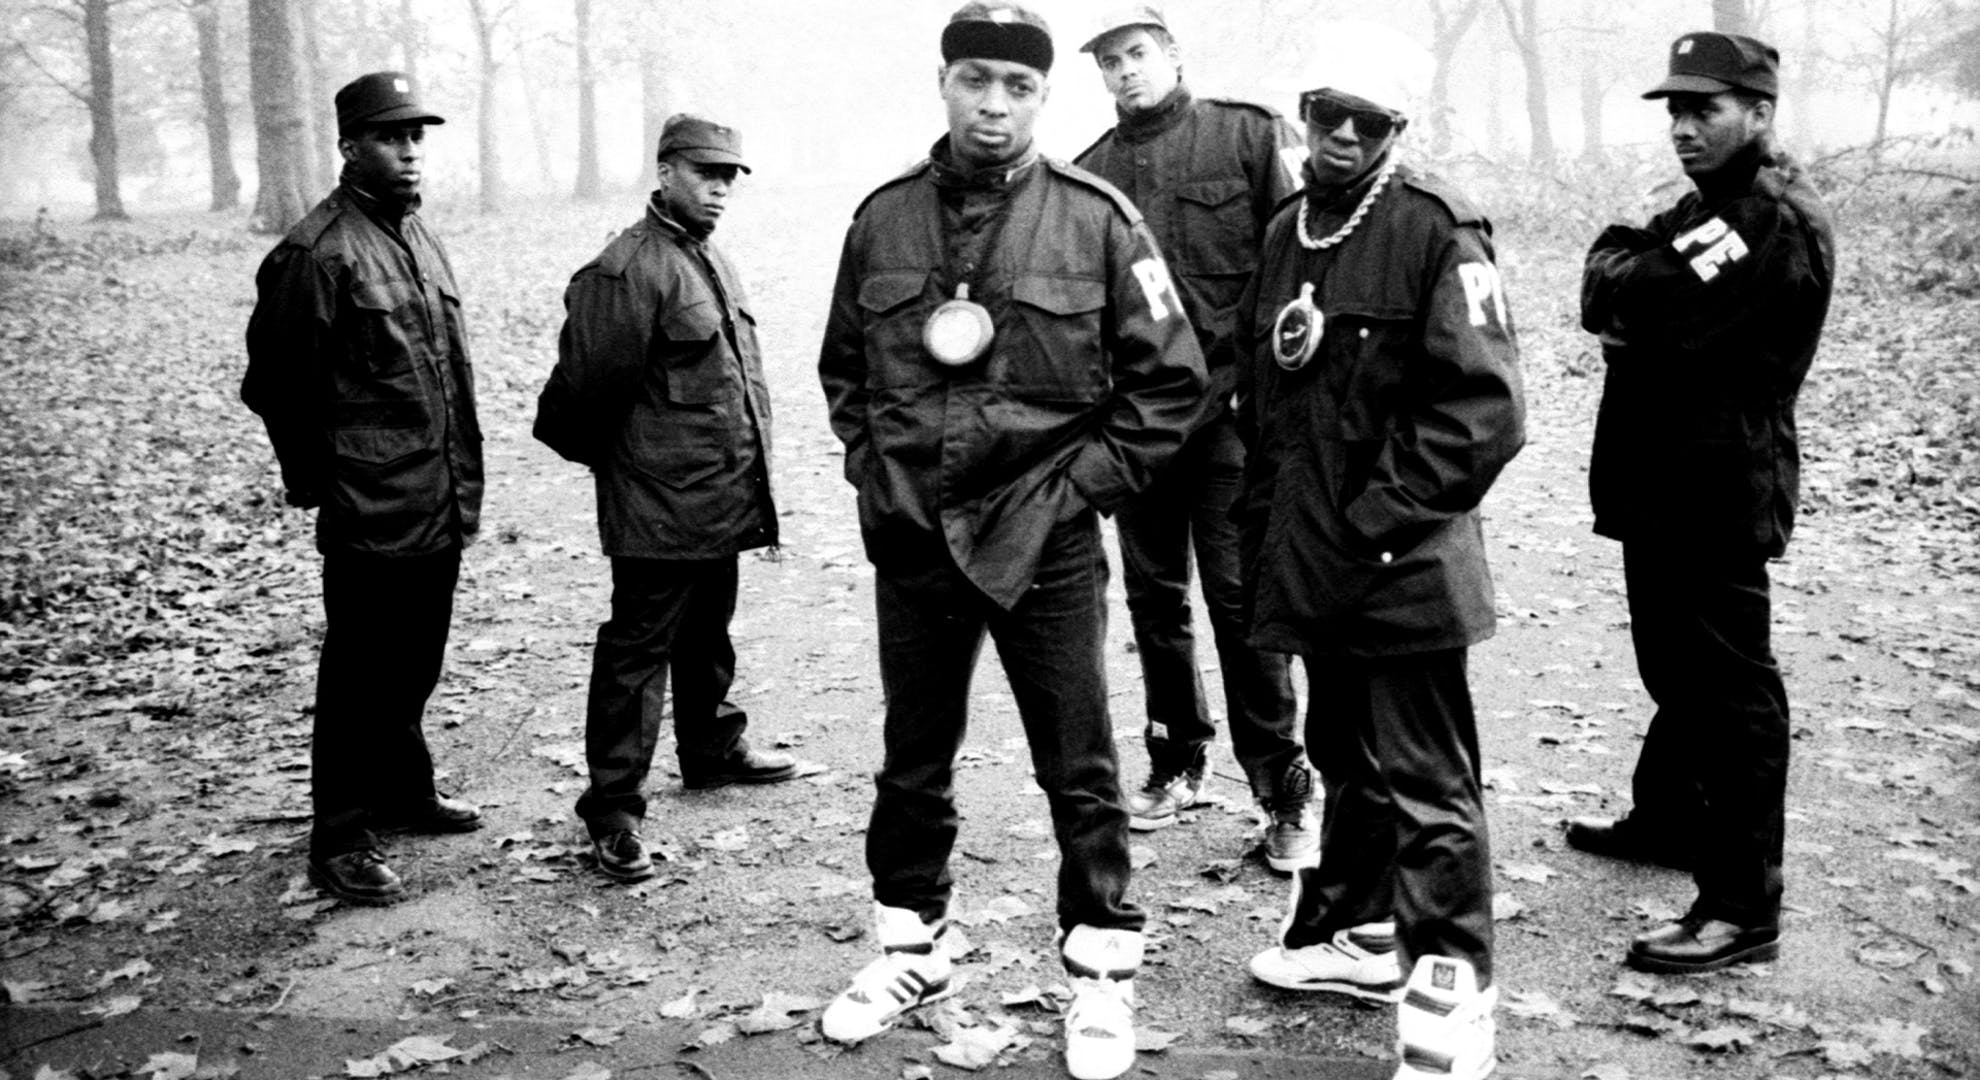 A member of the security organization S1W or 'Security Of The First World', S1W, Professor Griff, Chuck D, Terminator X, Flavor Flav, and another member of S1W of the rap group 'Public Enemy' pose for a portrait on November 2, 1987 in Hyde Park in London, England.